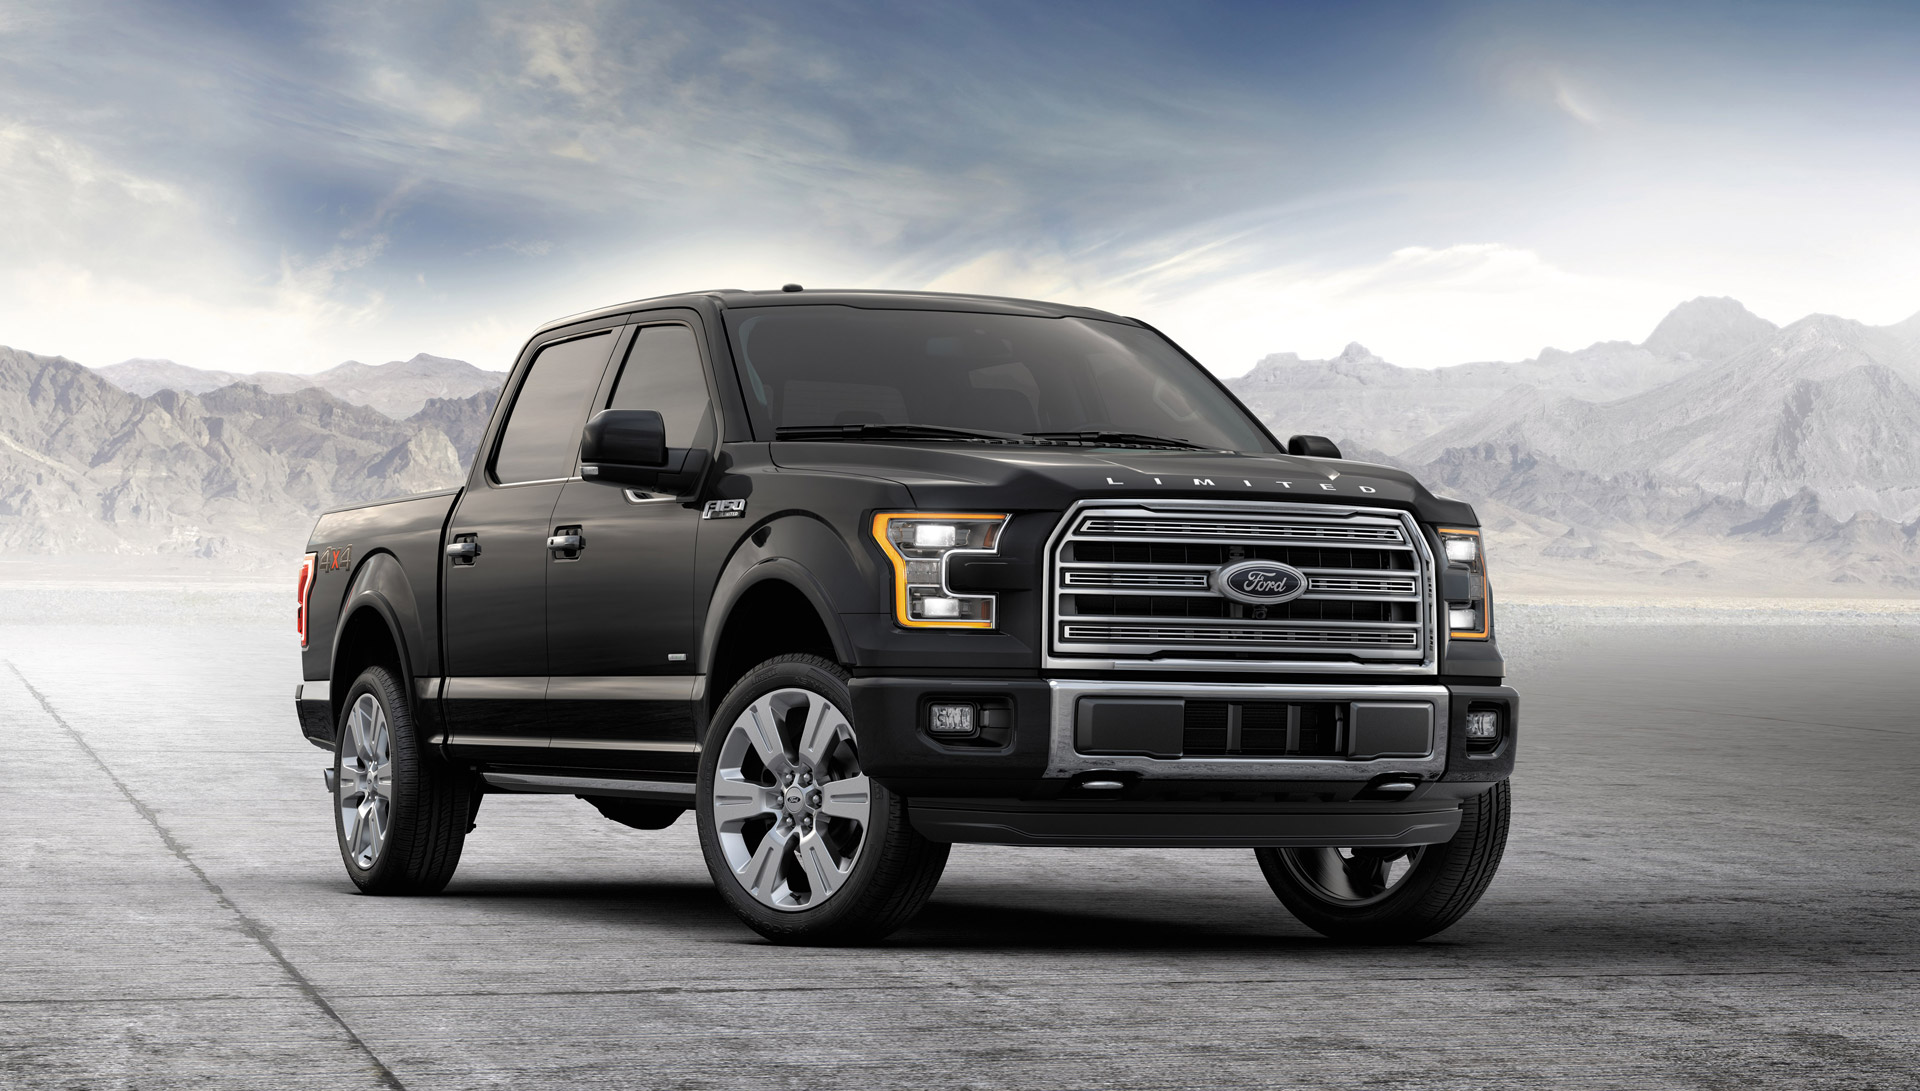 & Ford F-150 Diesel May Beat Ram EcoDiesel For Fuel Efficiency: Report markmcfarlin.com